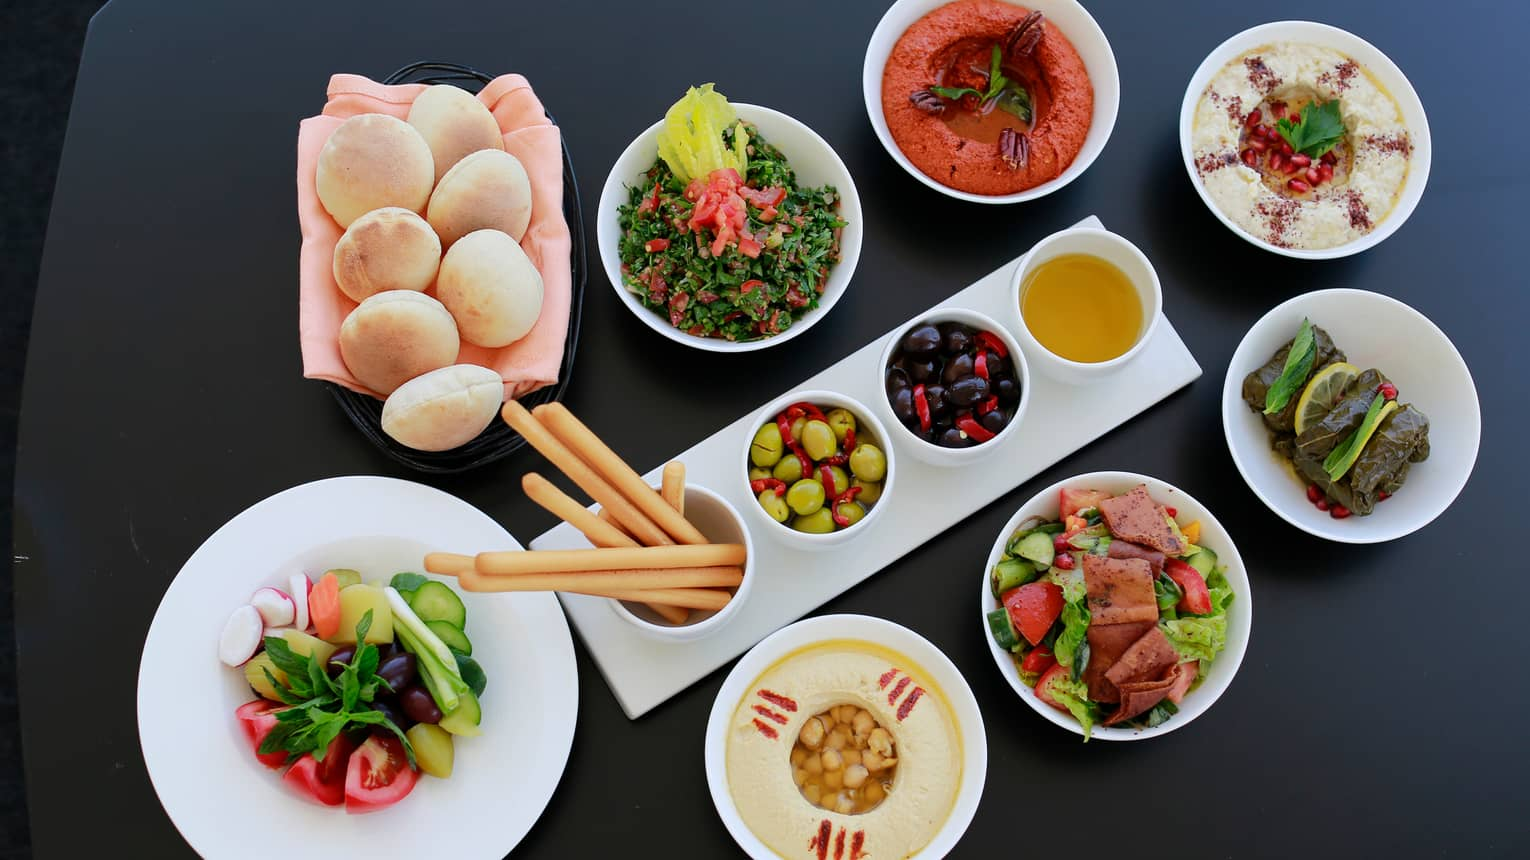 Assortment of Lebanese foods